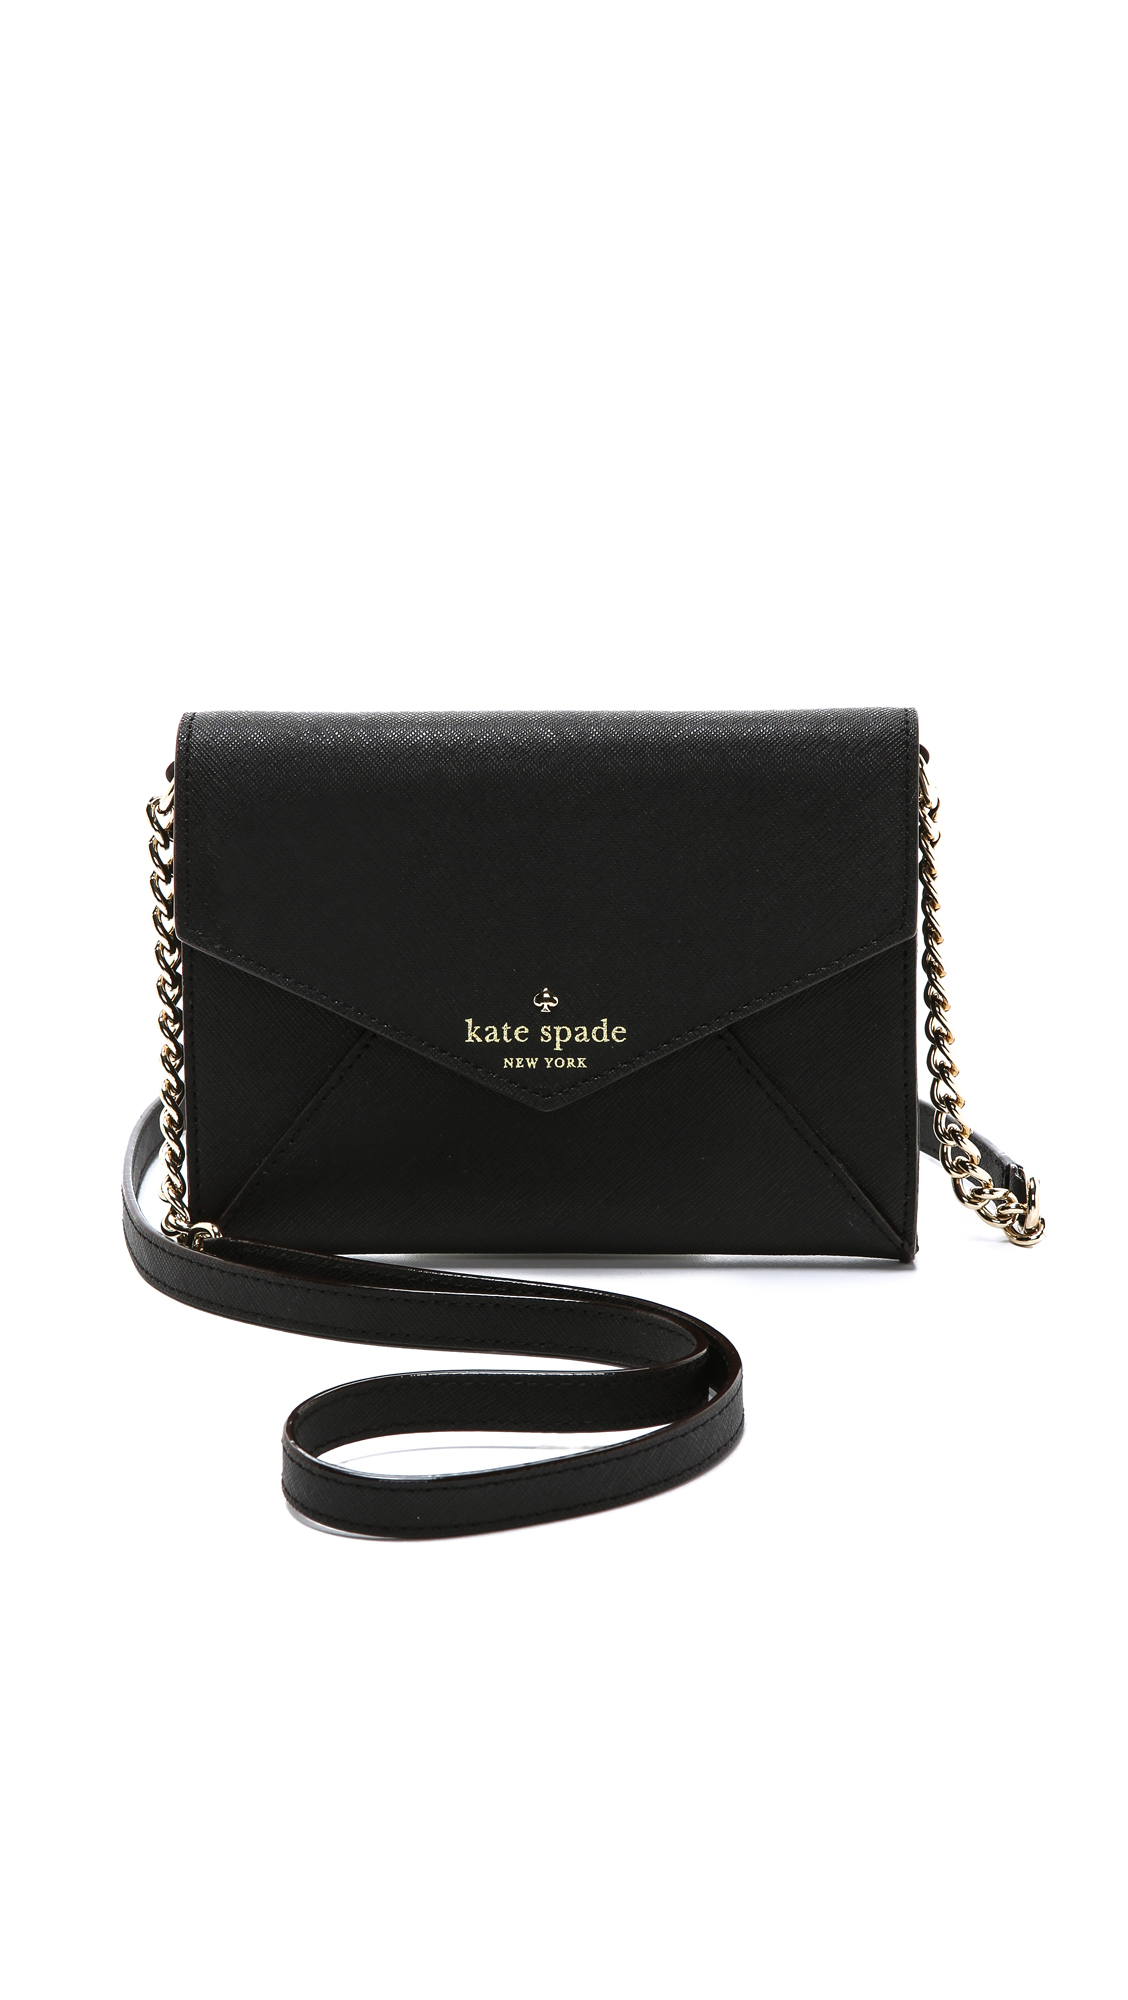 Welcome to kate spade outlet online,% Original kate spade bags with high quality online sale up to 70% discount New Design Kate Spade Sale 360peqilubufebor.cf Quality & Free shipping!